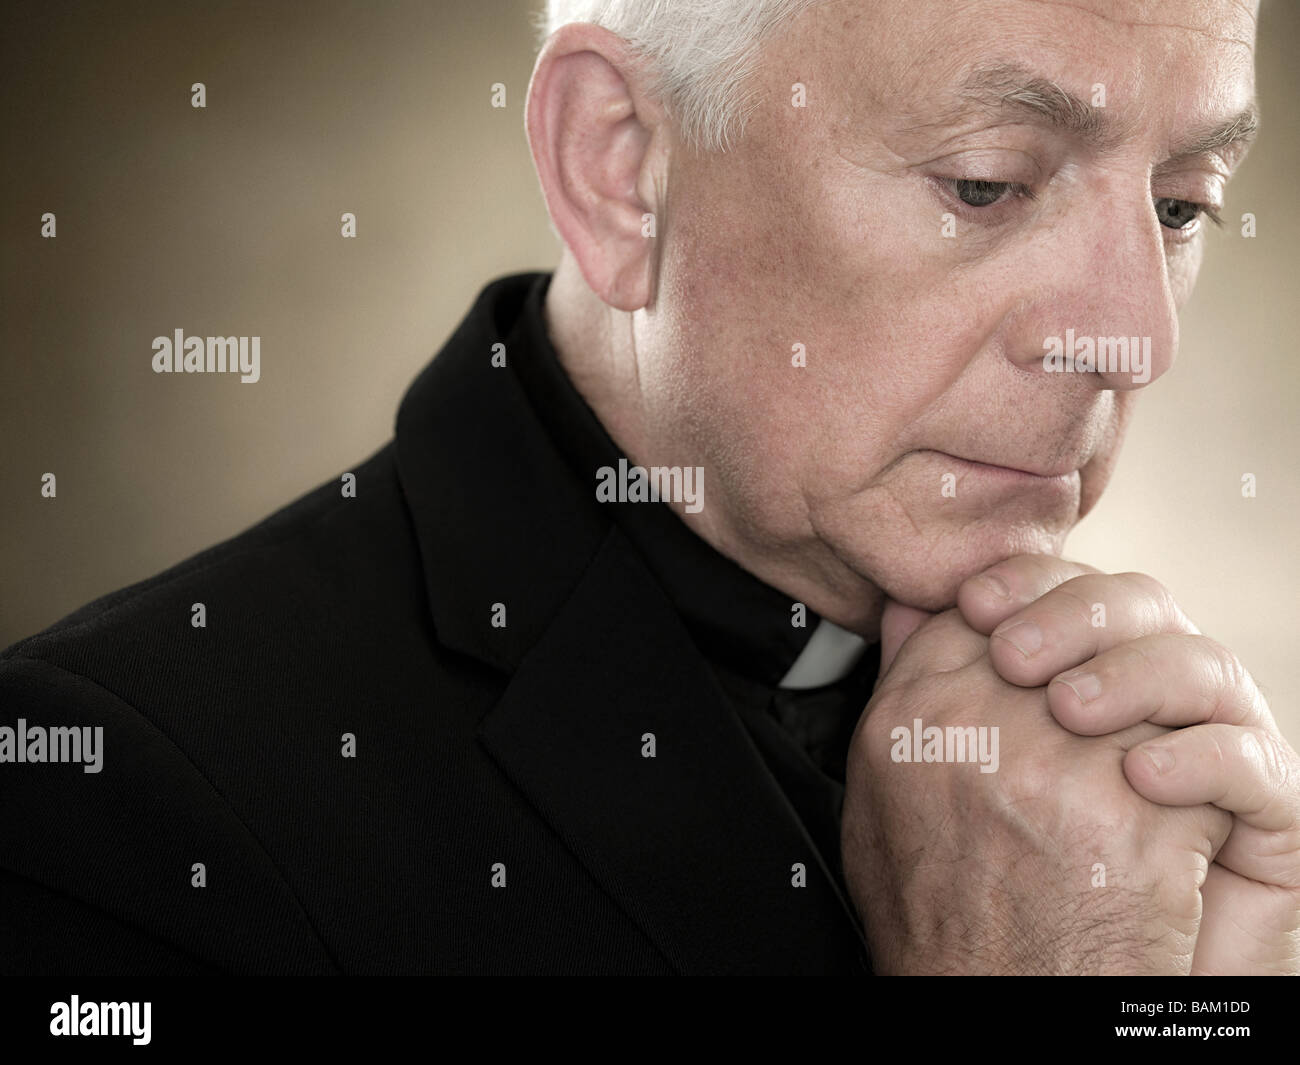 A priest praying - Stock Image